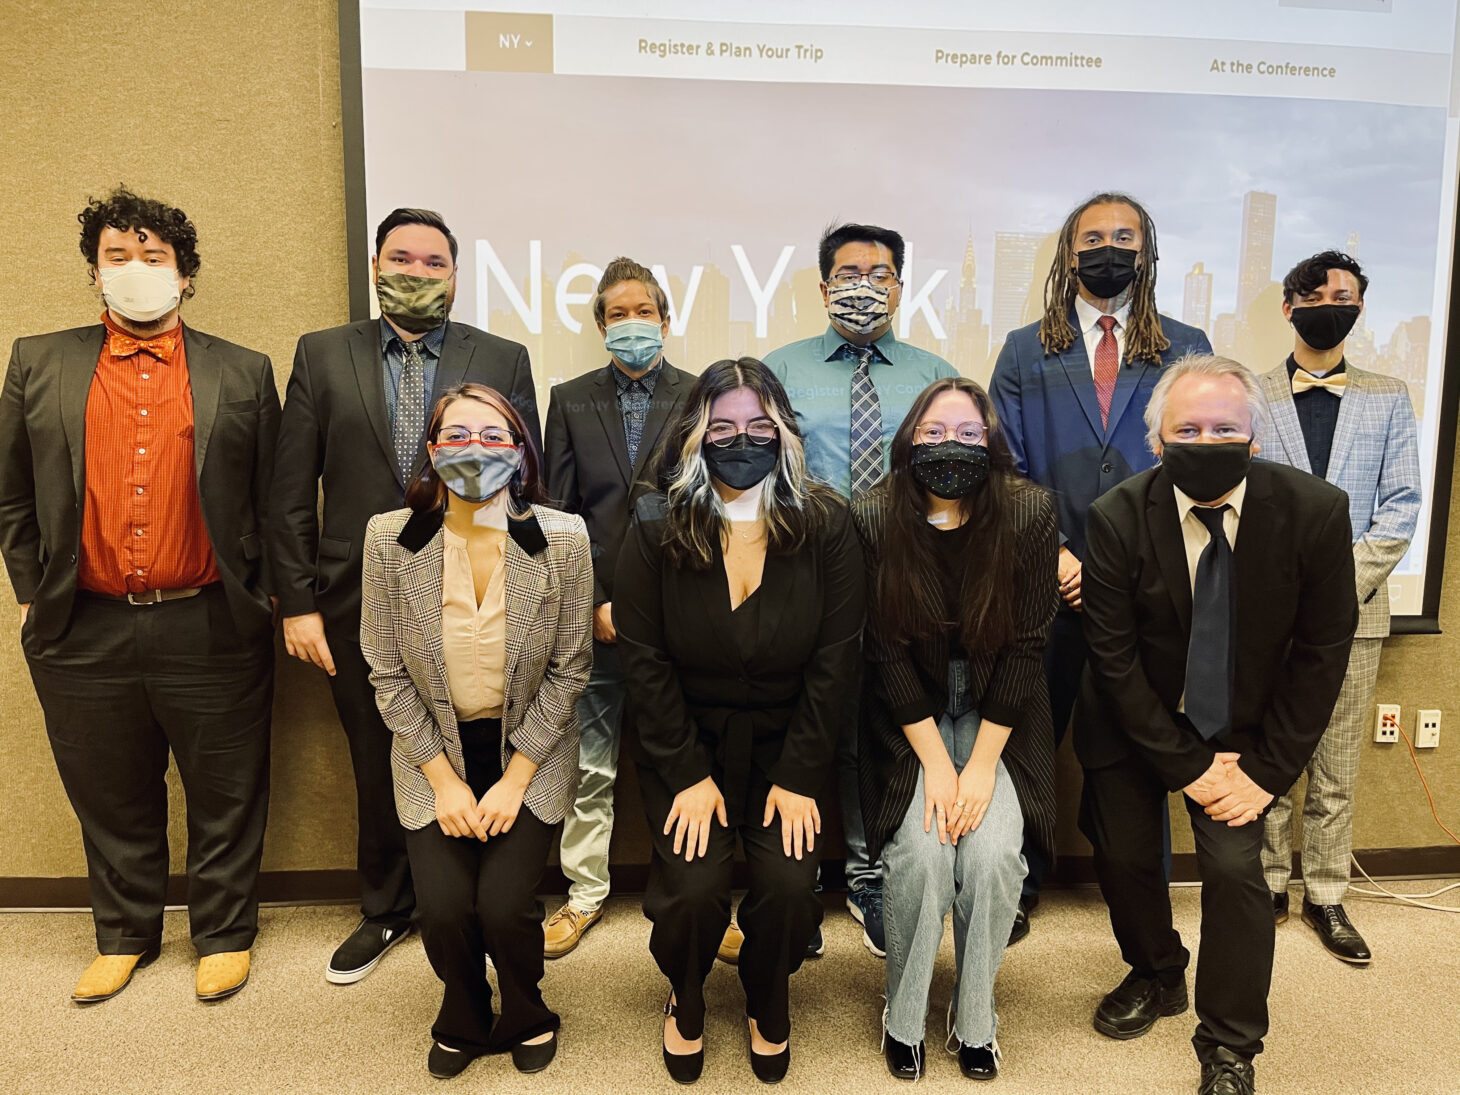 The NMSU Model United Nations Team members participated in the virtual 2021 national conference. Team members include (from left back row) Giovanni Cisneros, Omar Ortega, Jay Hernandez, James Madrid, Rakim Stokes and Cole Vetter. From left front row, Jasmine Recinos, Iliana Viscarra, Citlali Benitez, and Neil Harvey, Model U.N. faculty adviser